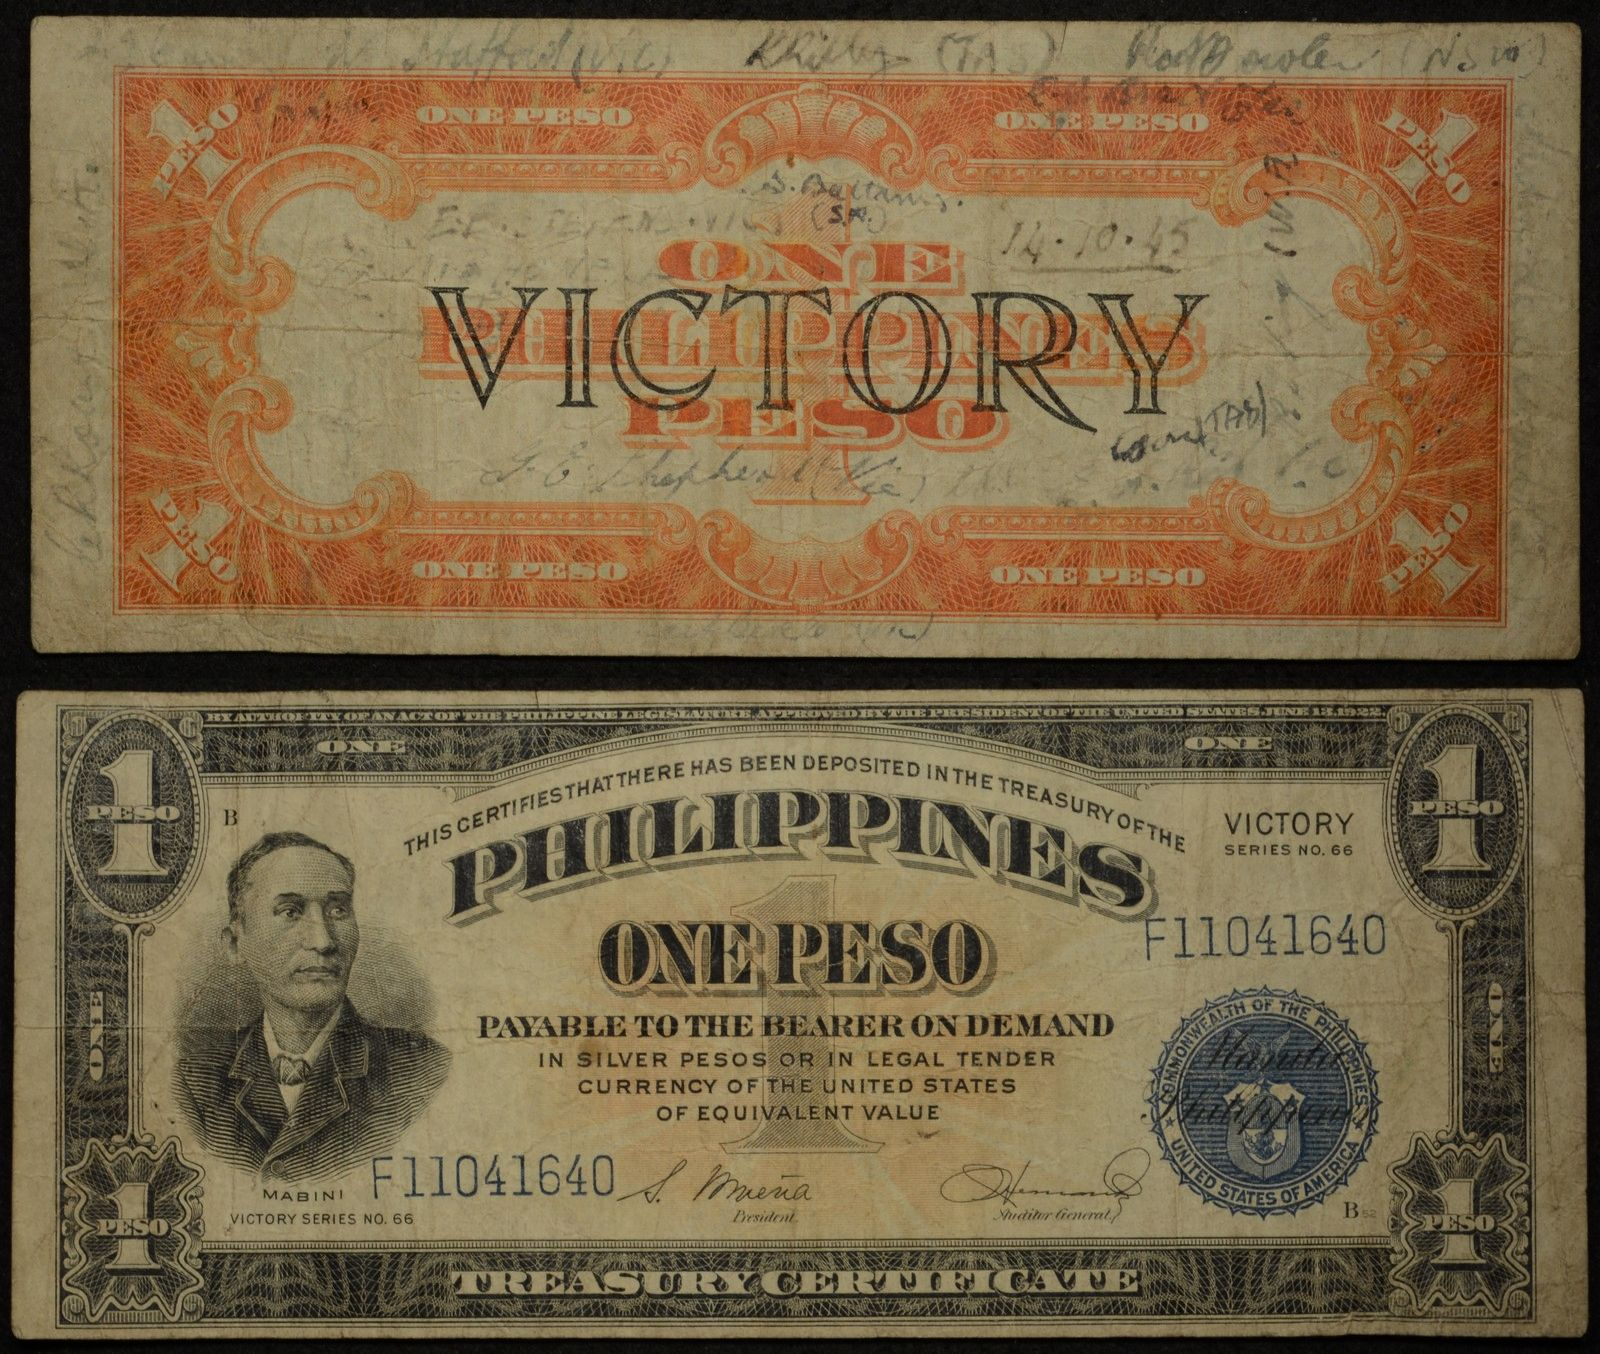 Phillipines Victory One Peso Banknote Short Snorter